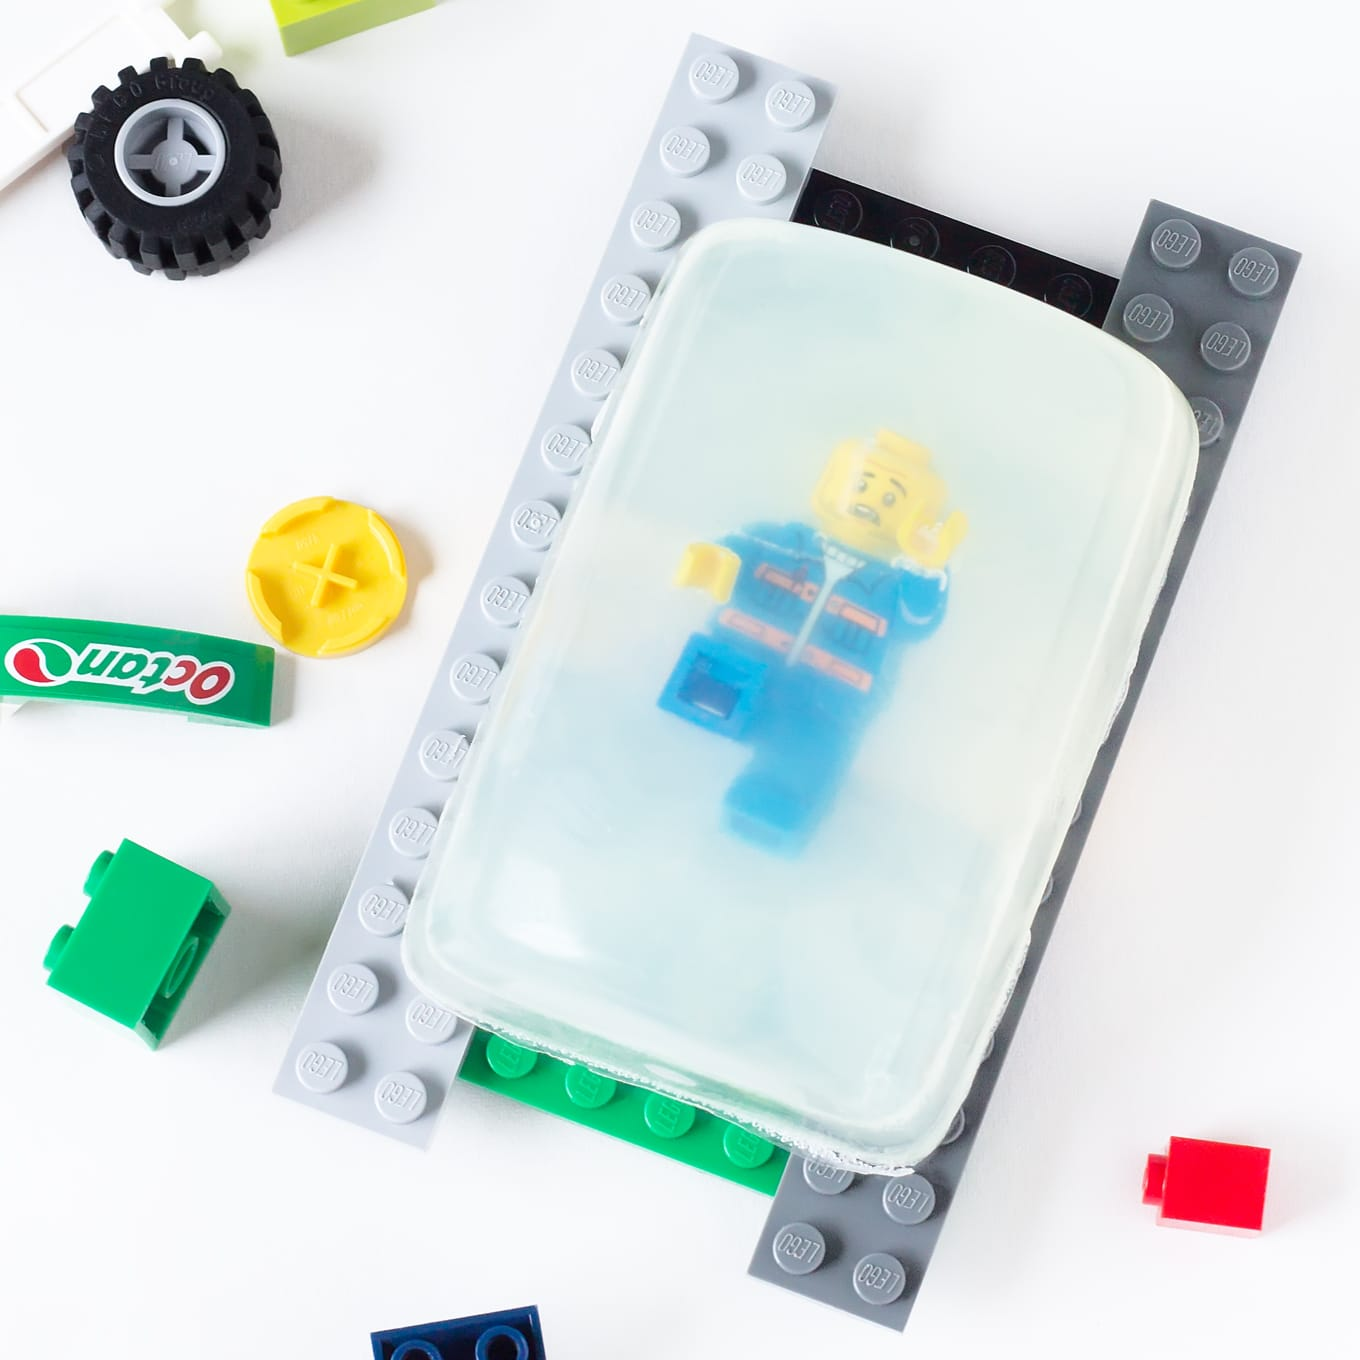 LEGO Rescue Soap with LEGO Soap Holder